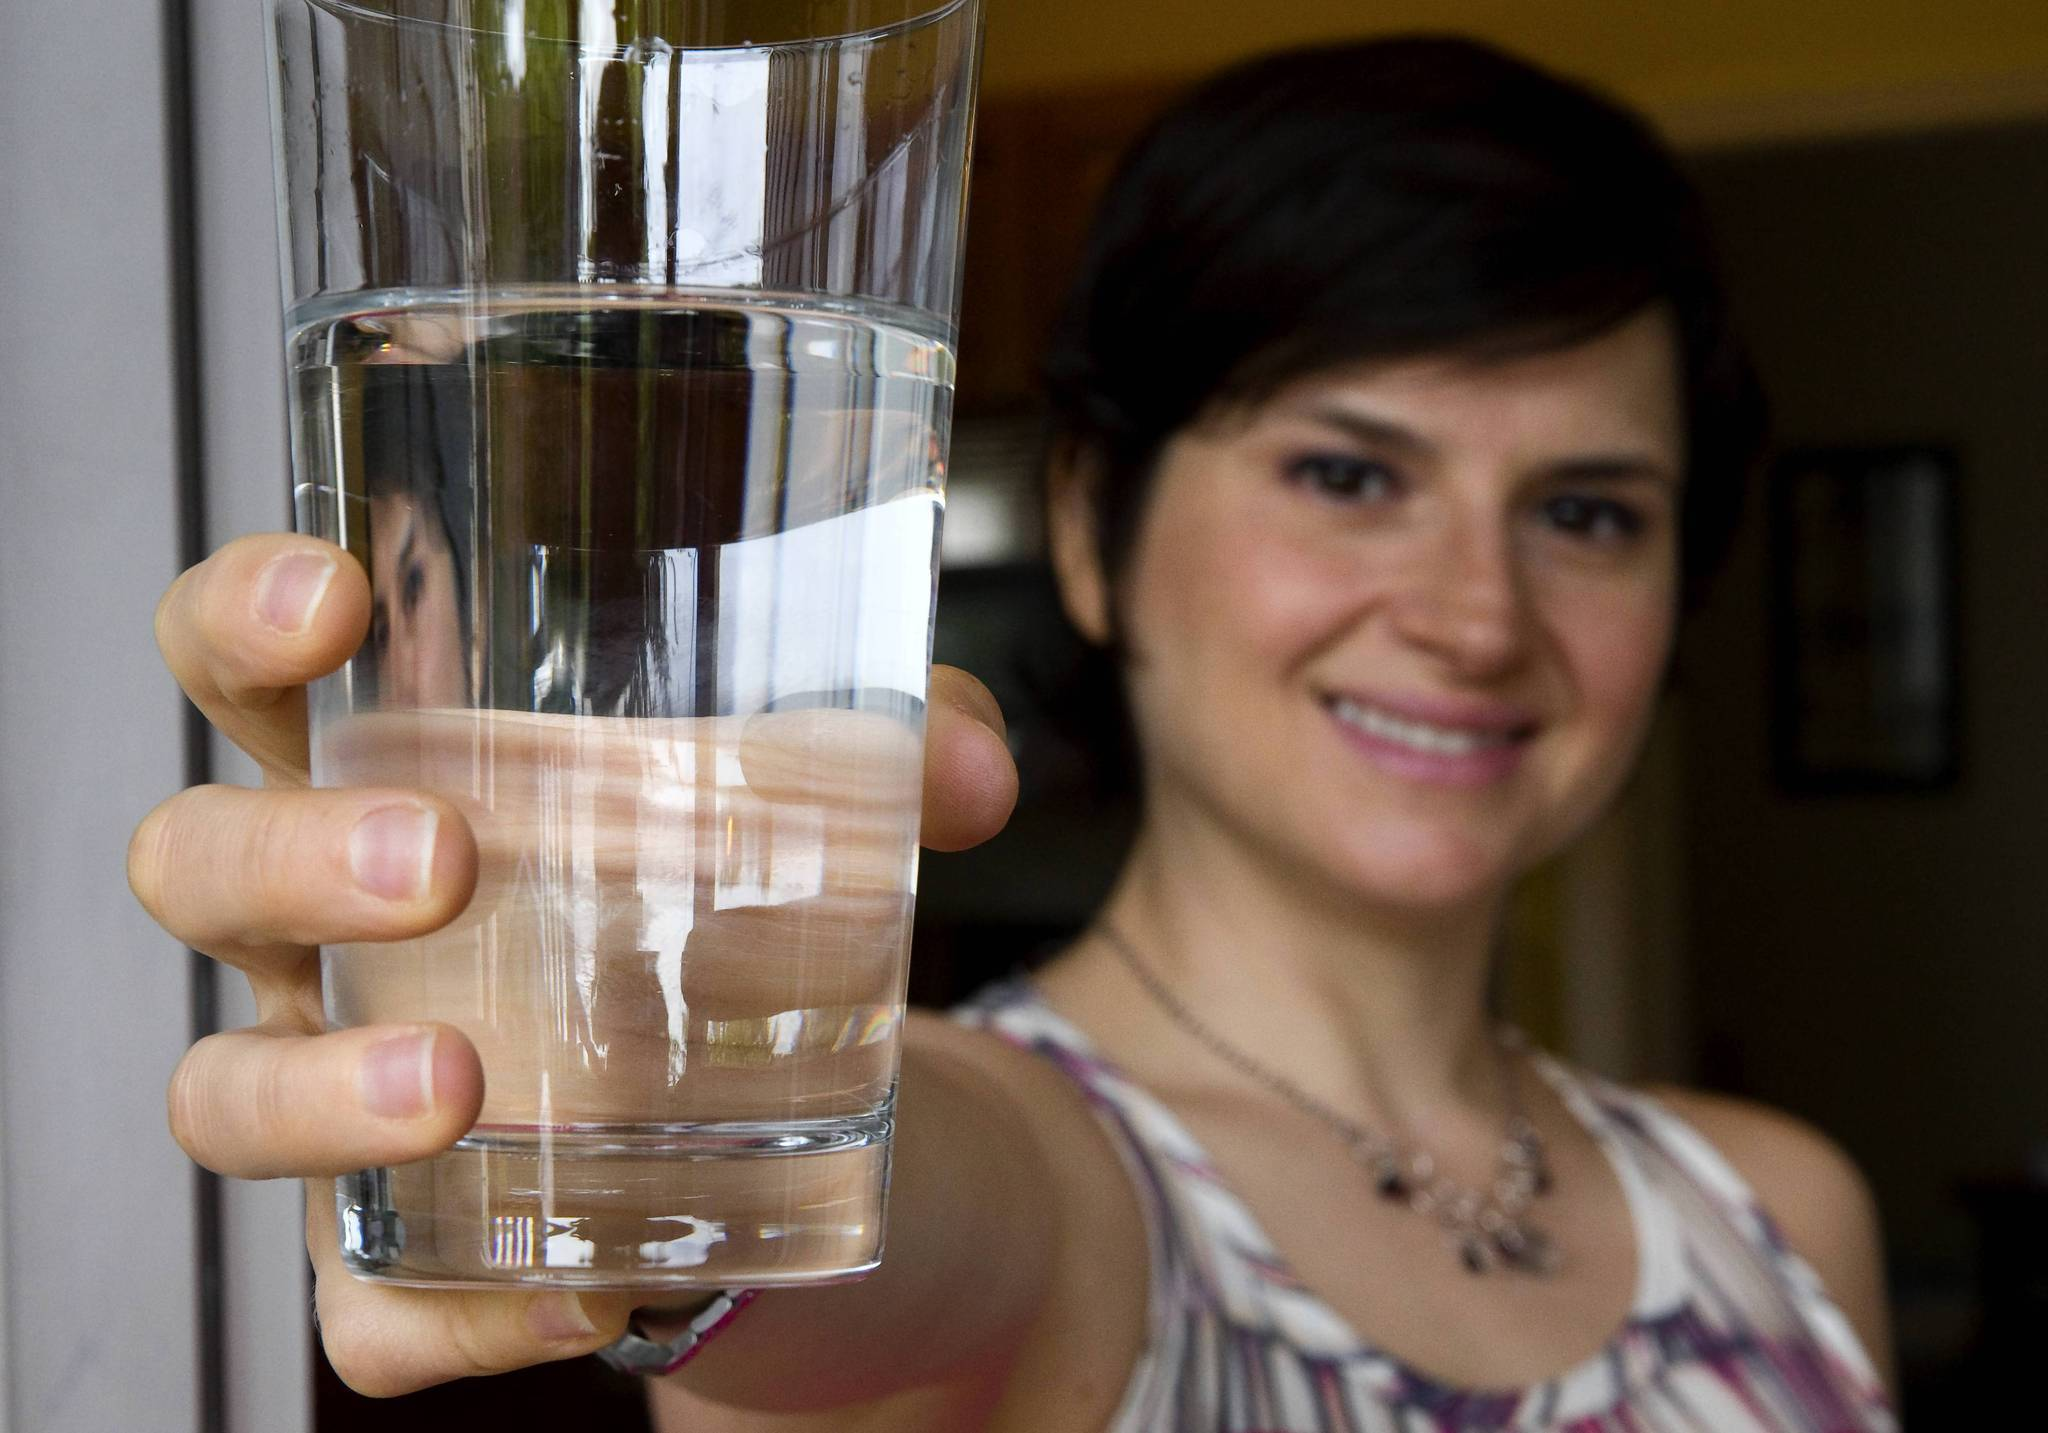 Study finds nearly half of Americans not drinking enough water